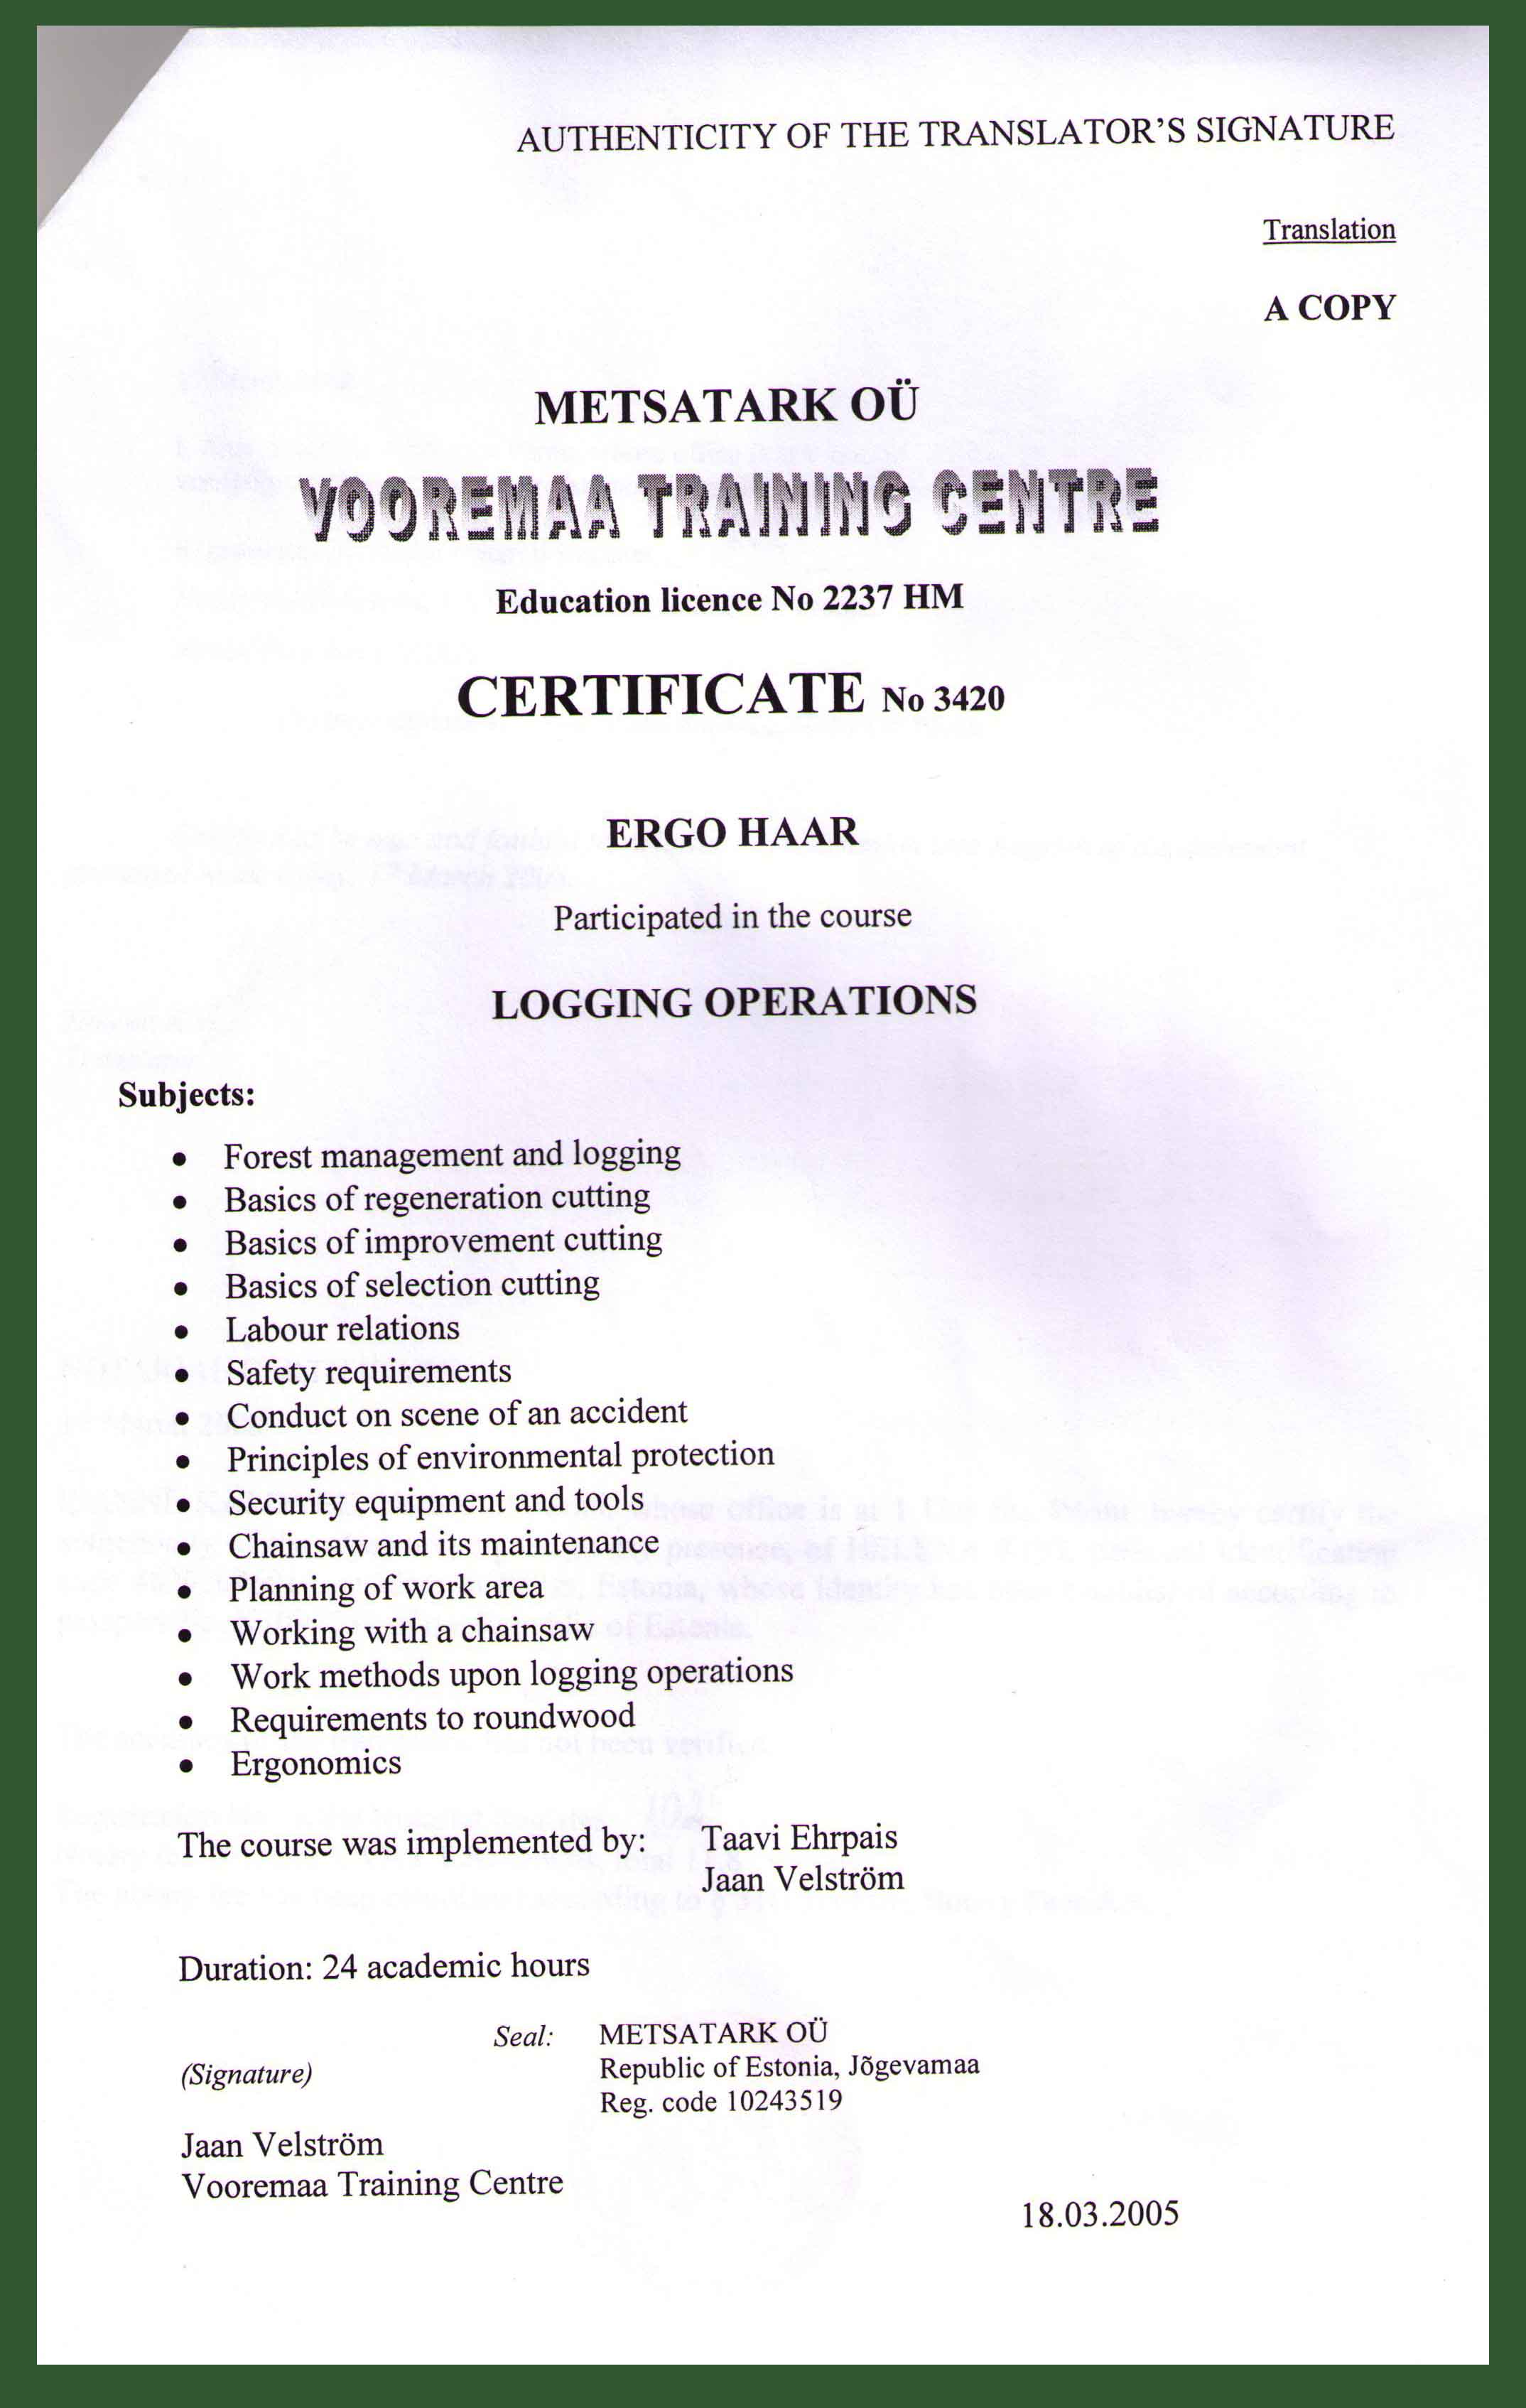 Haarwood - Certificates and reference letters